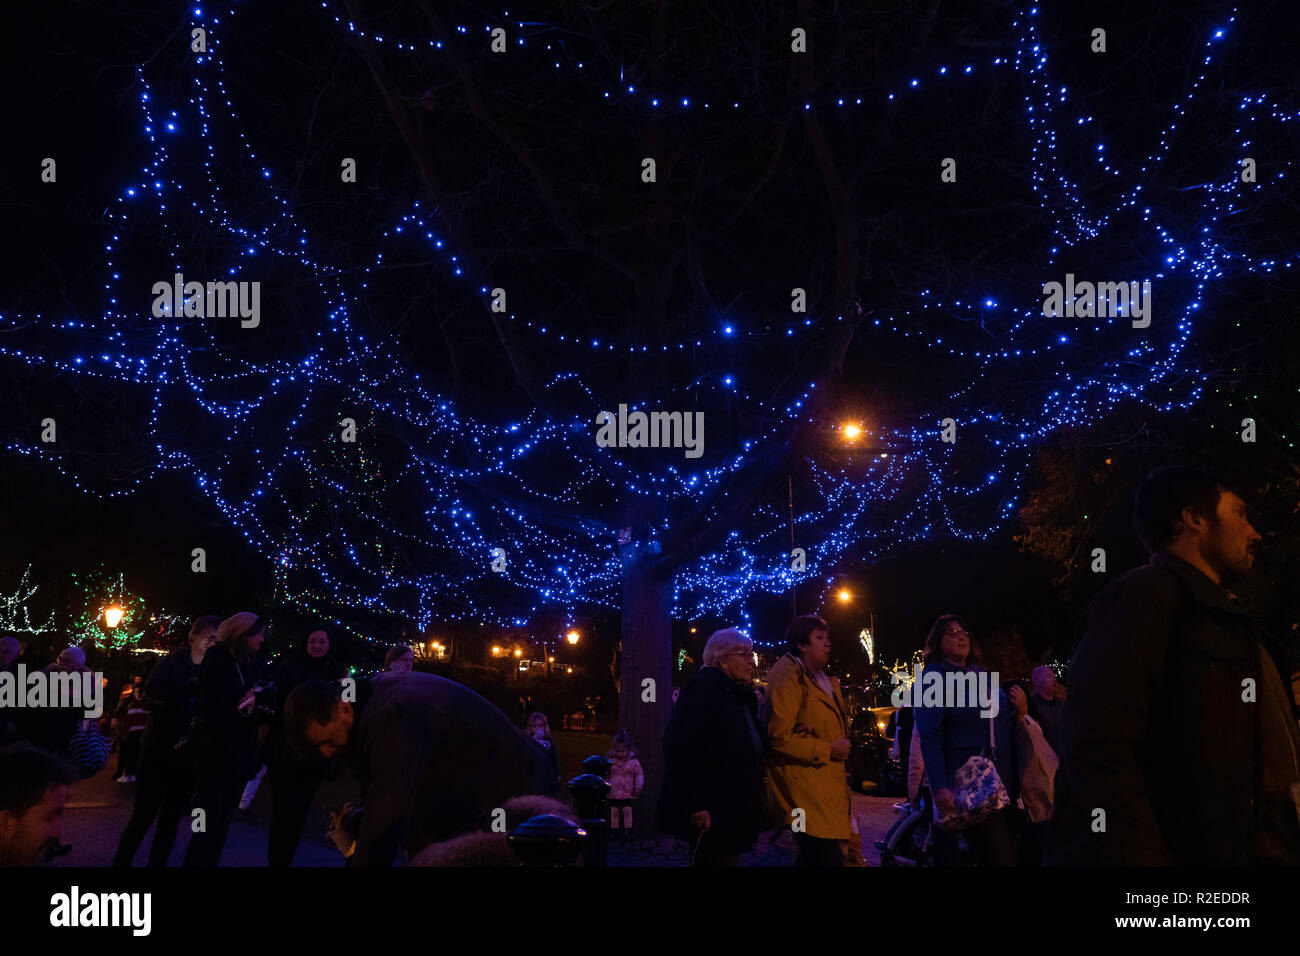 Tree with ornamental blue illuminated lights with people walking underneath,Montpellier Quarter,Harrogate,North Yorkshire,England,UK. - Stock Image